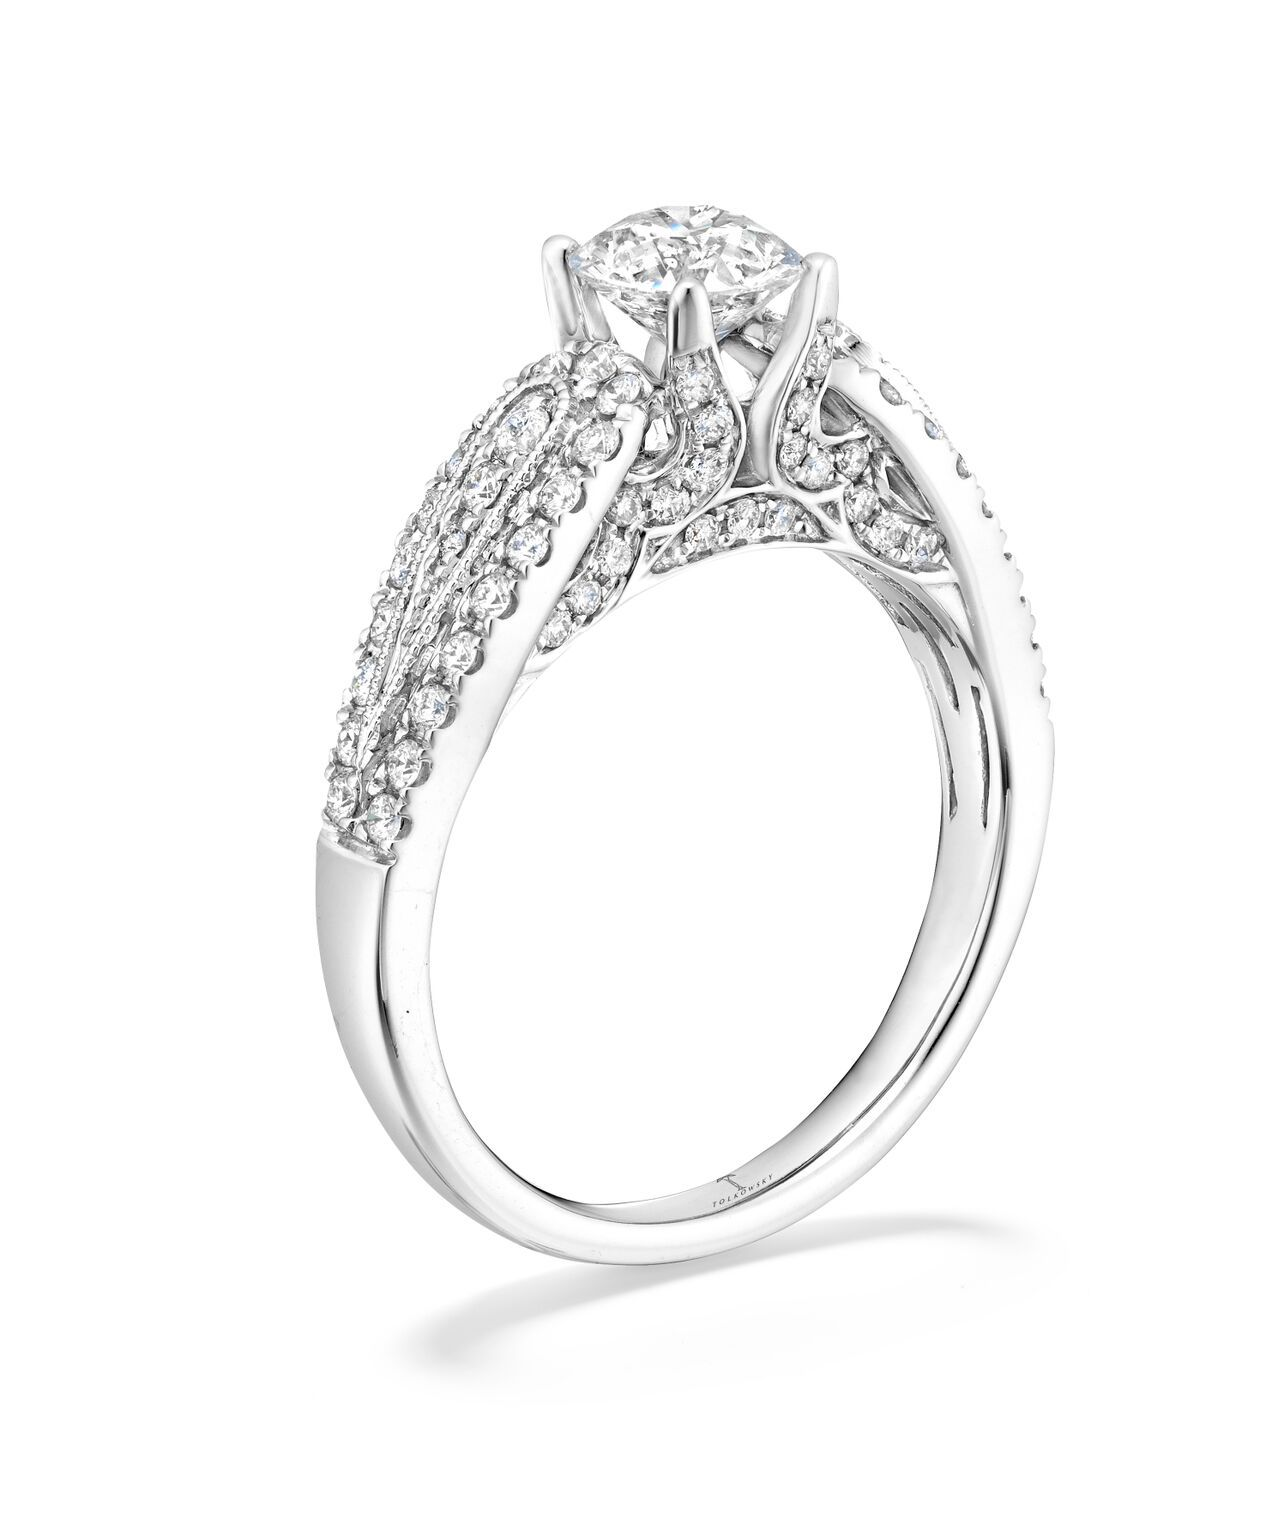 Tolkowsky Diamond Engagement Ring in 14K White Gold Available in